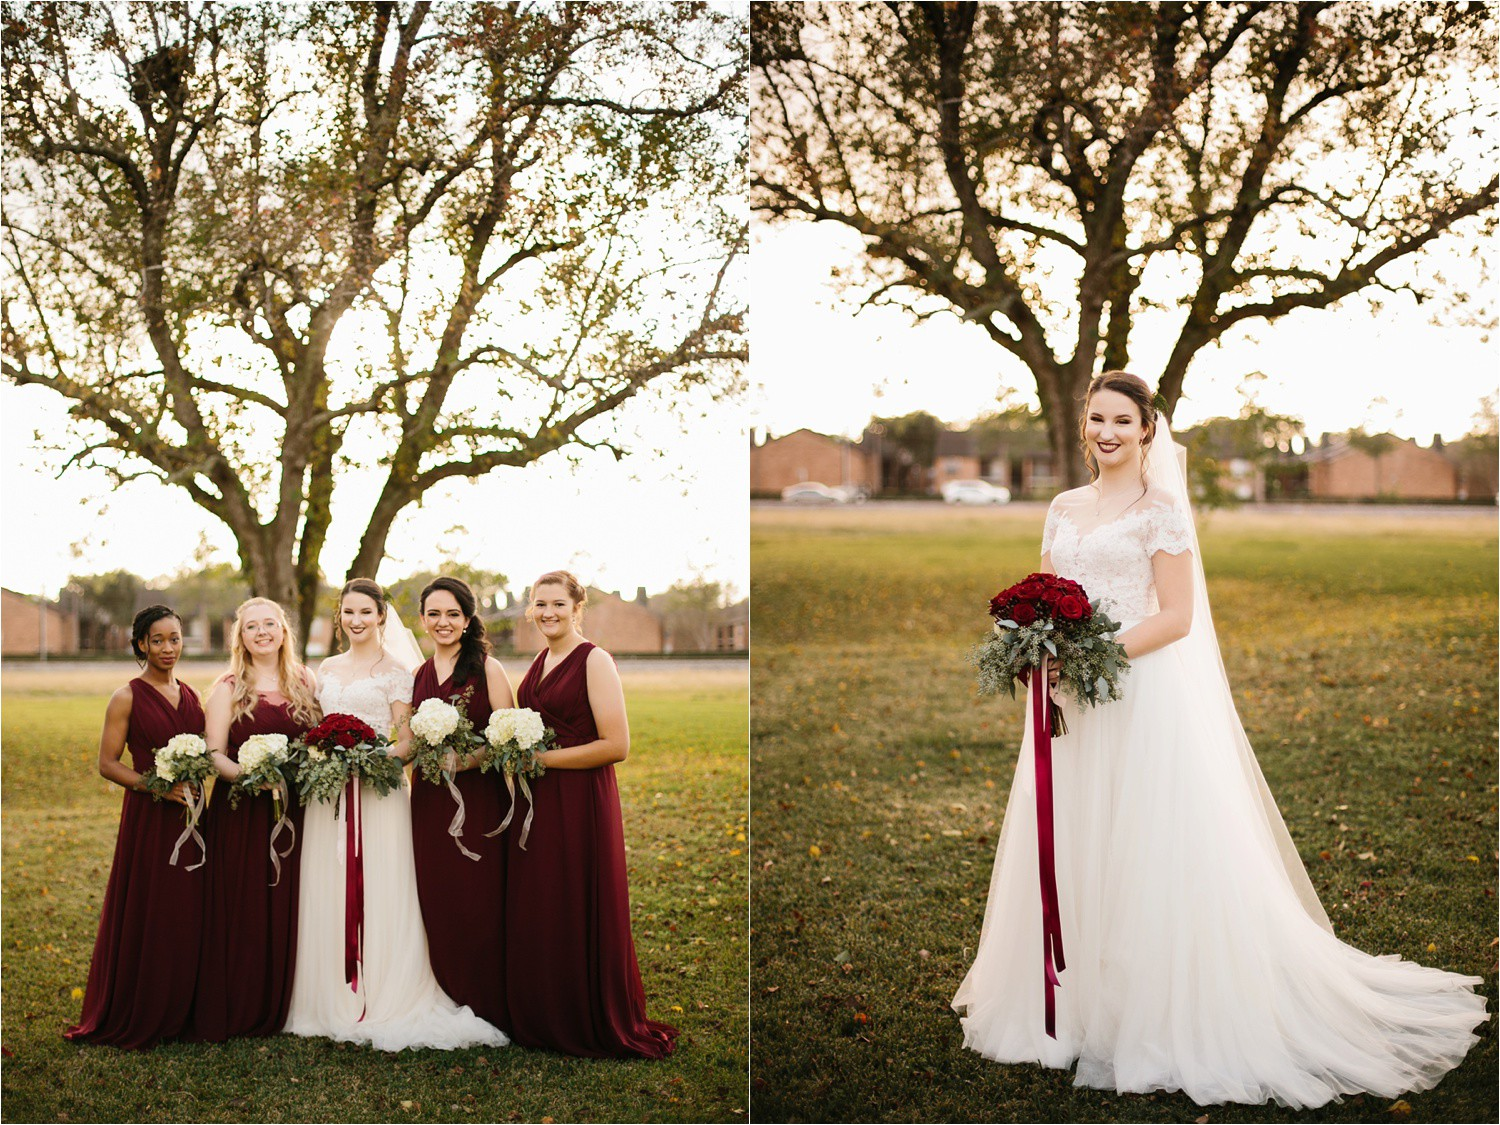 Alaina + Josh __ a wintertime wedding in Houston, TX with Christmas accents and a BHLDN dress by North Texas Wedding Photographer Rachel Meagan Photography _ 12